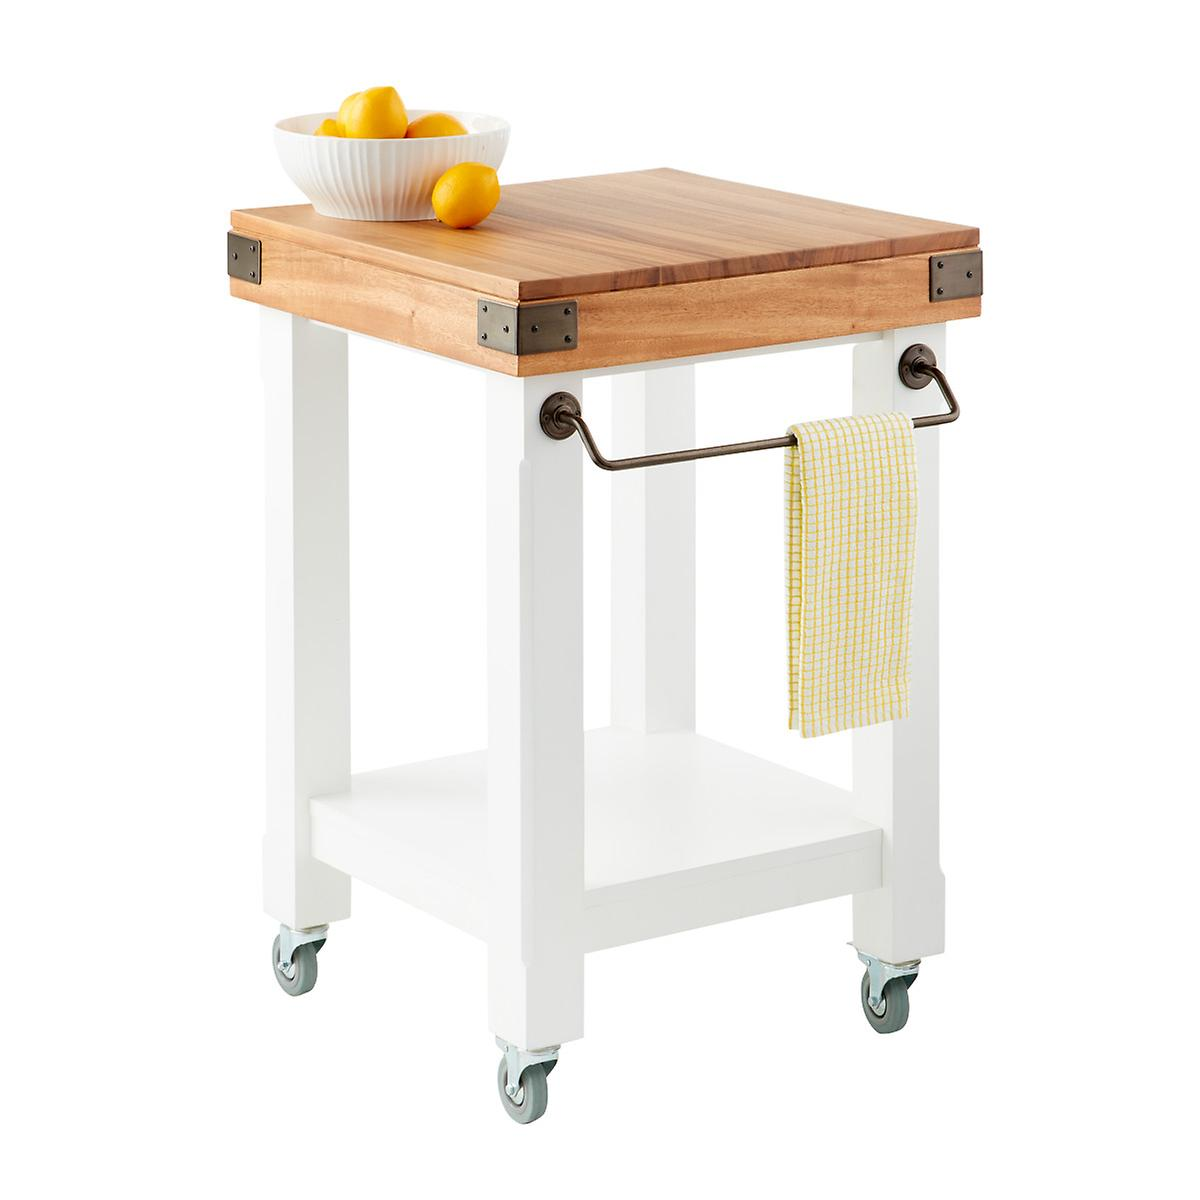 Butcher Block Kitchen Carts And Islands : Butcher Block Rolling Kitchen Island Cart The Container Store